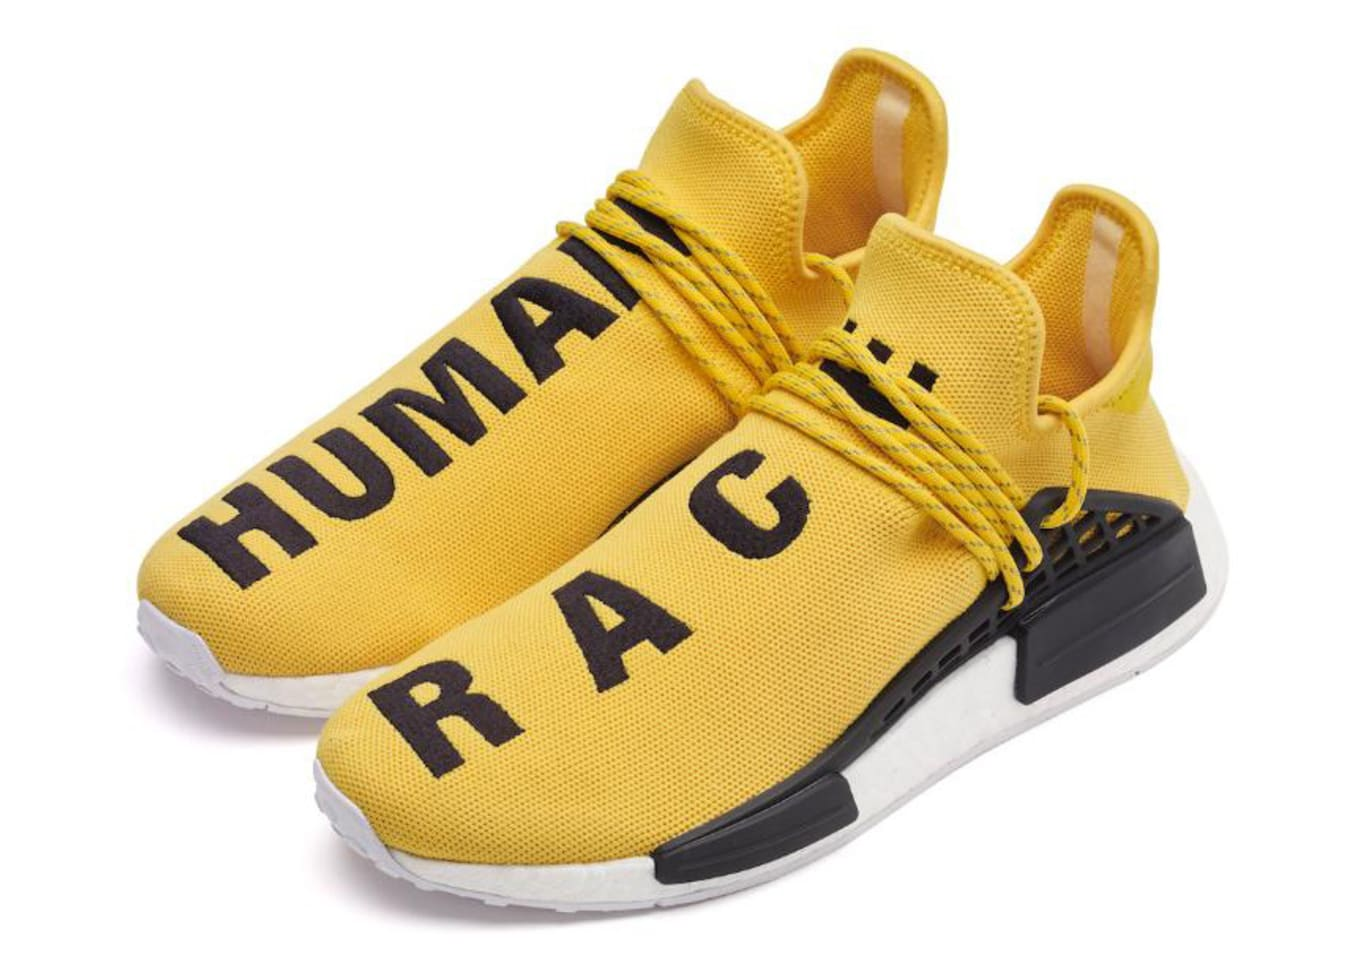 826d00f58 adidas HU NMD x Pharrell Williams